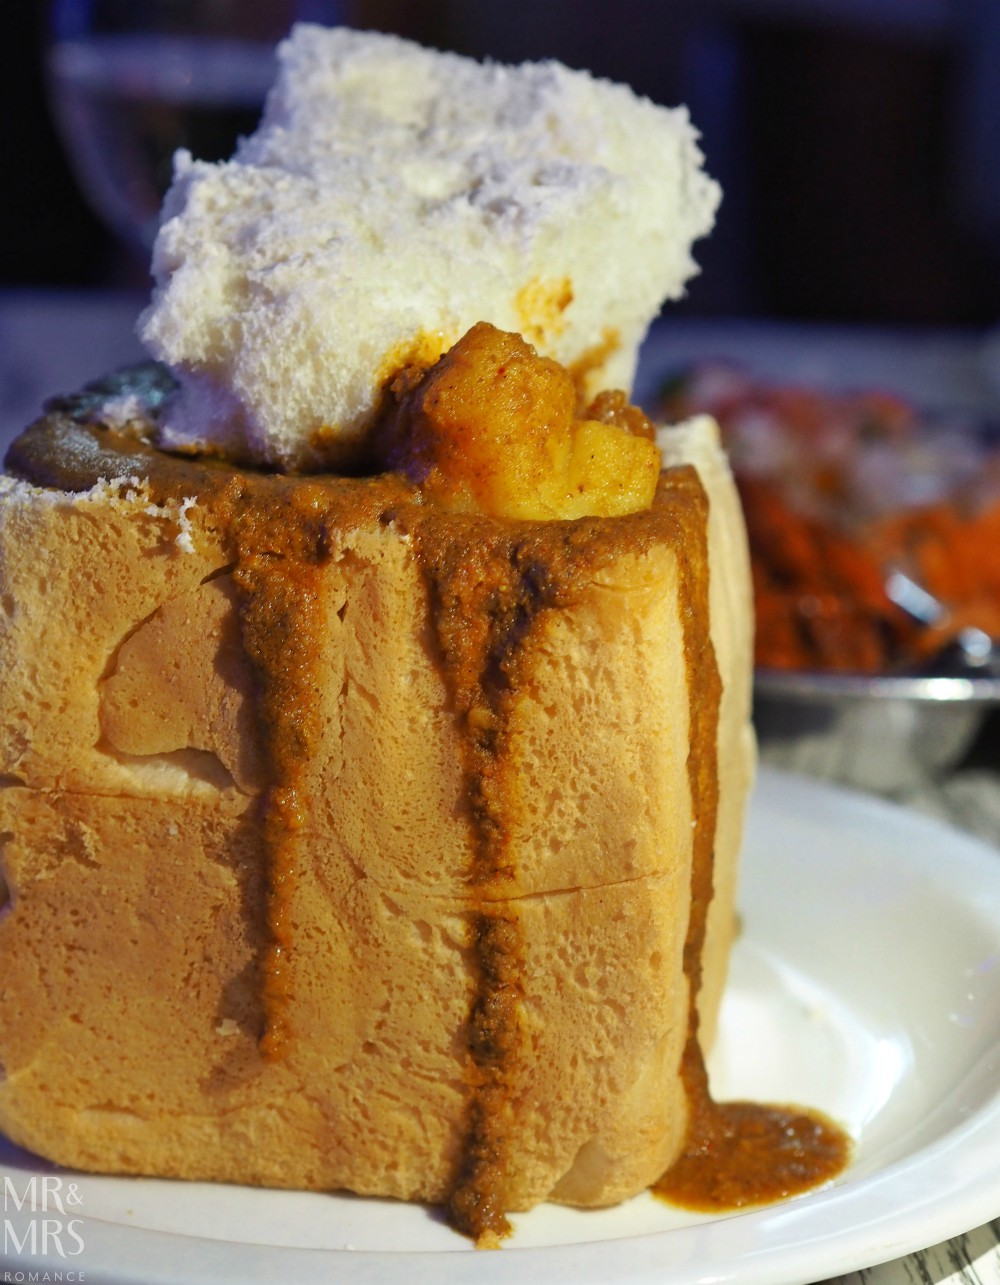 Visit South Africa - bunny chow, Durban